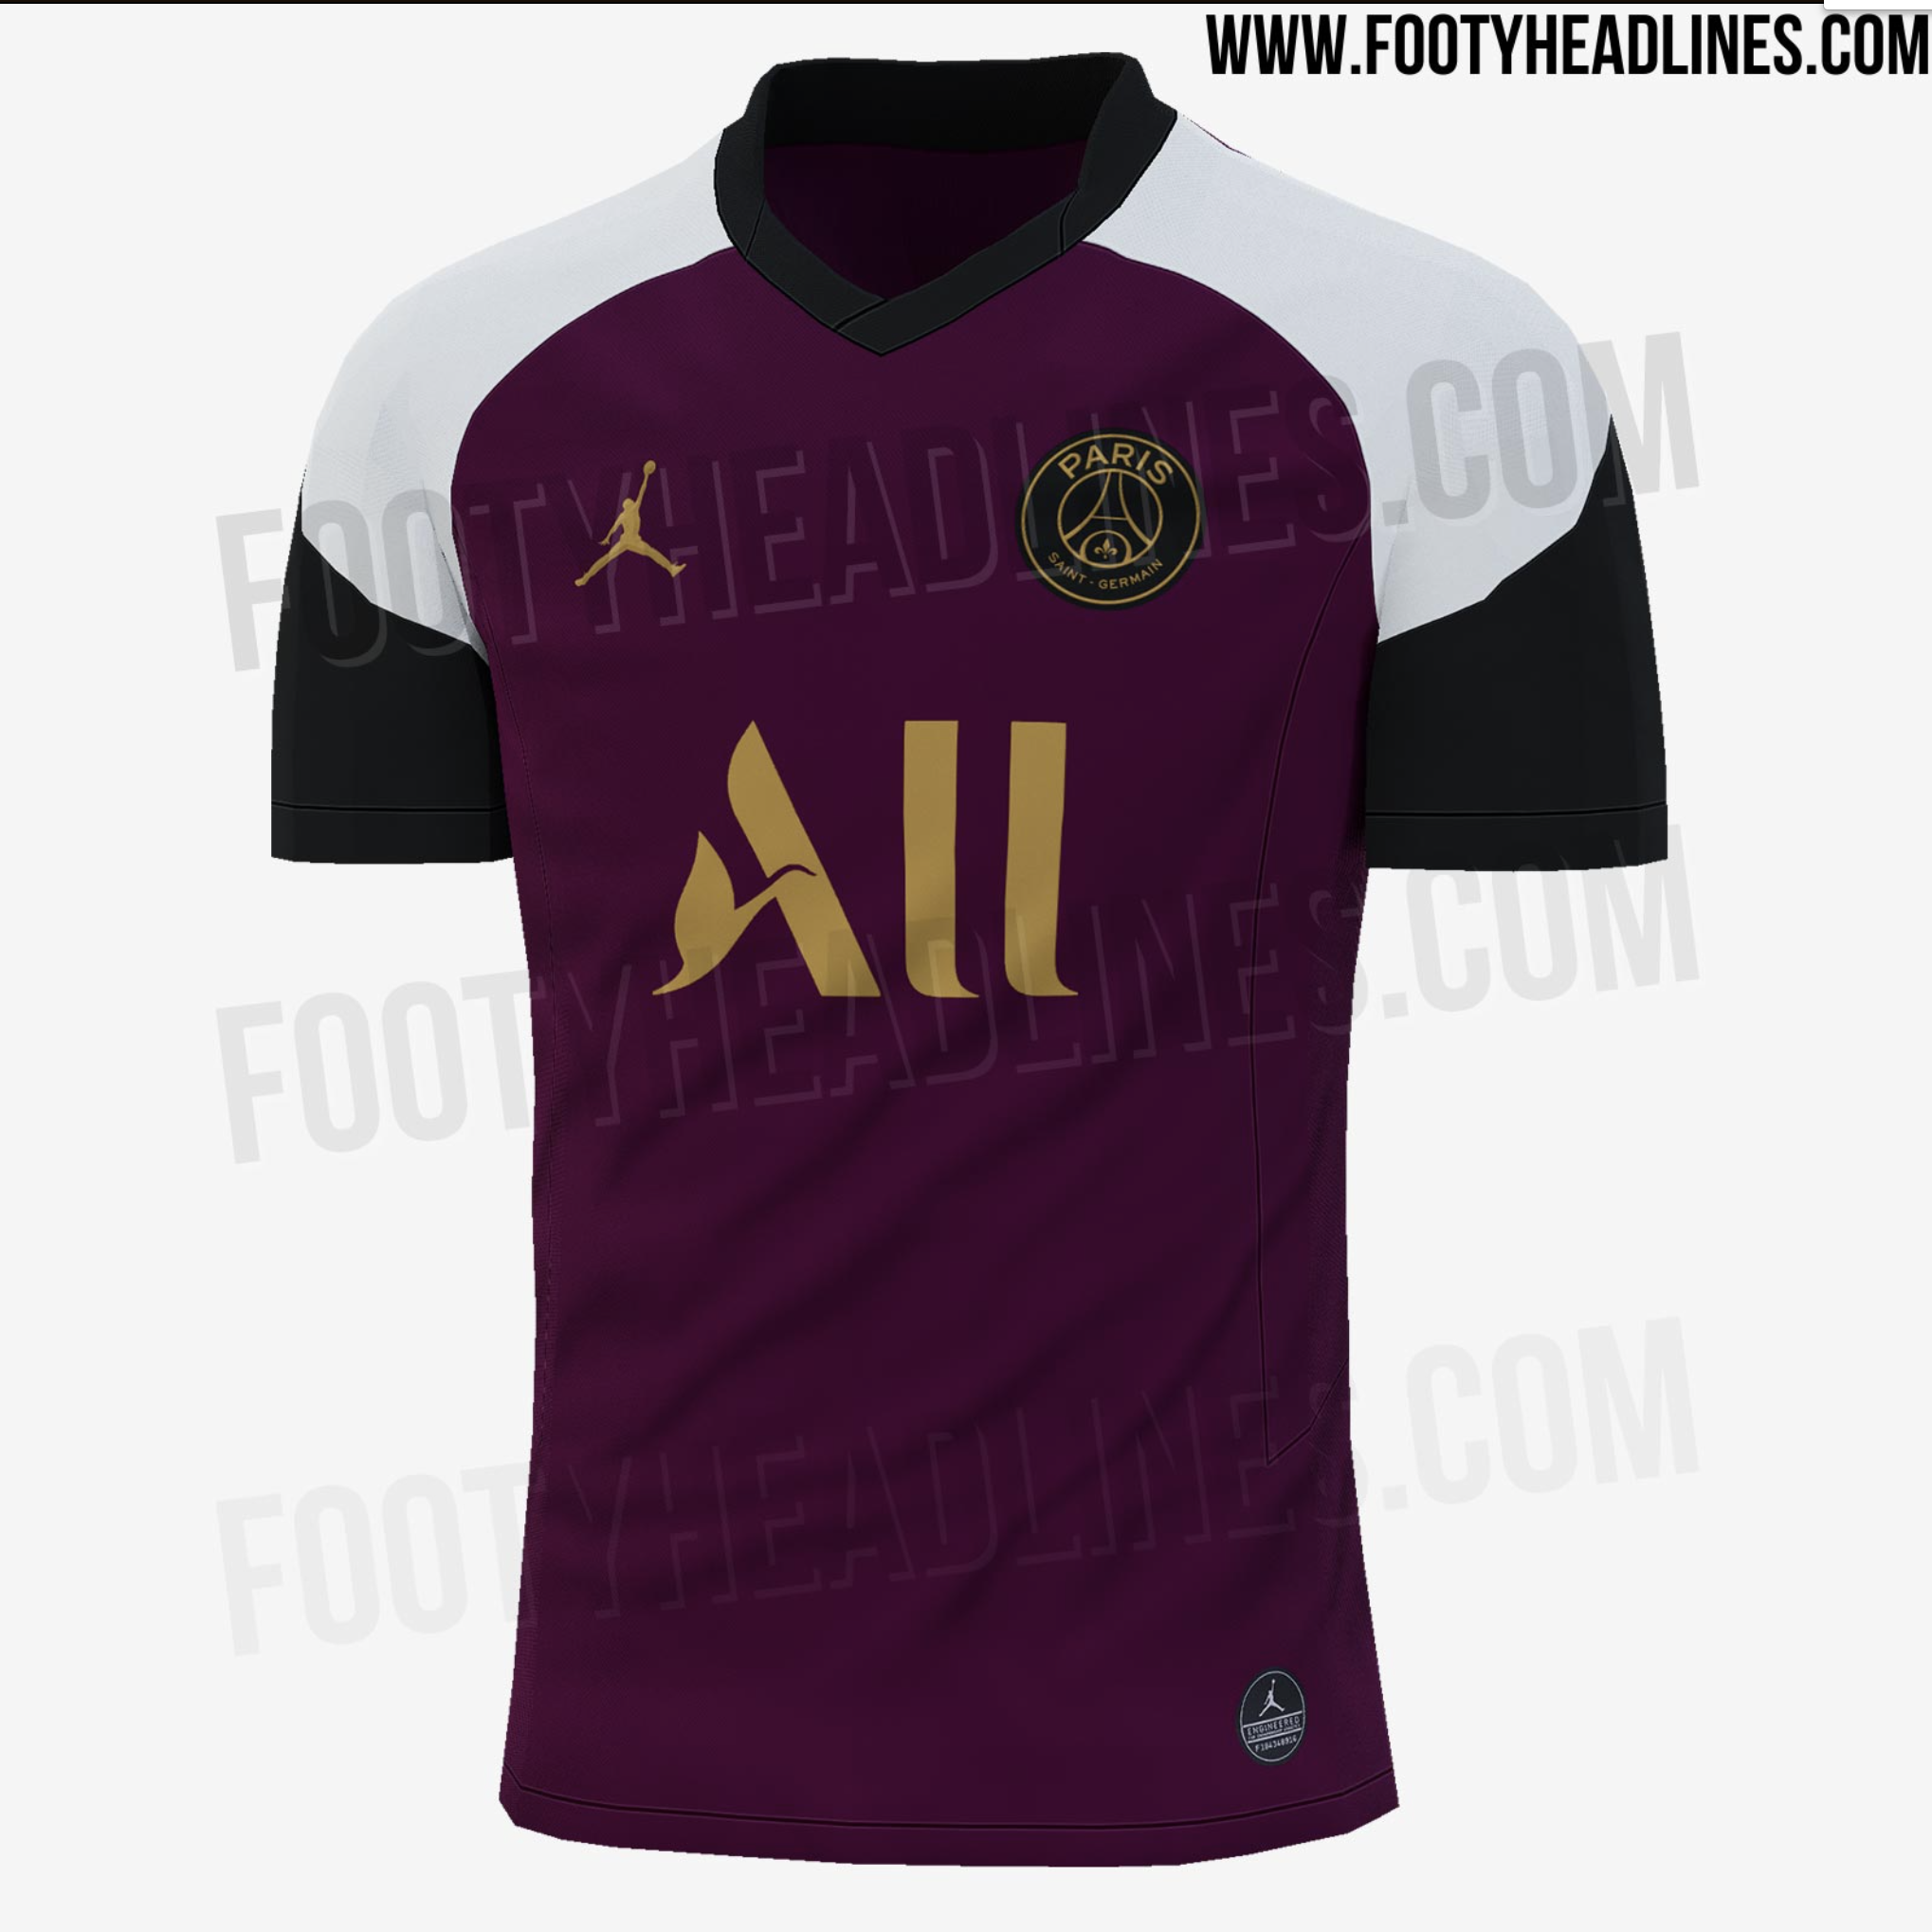 Psg S Gorgeous New Burgundy Third Kit Has Been Leaked Joe Co Uk